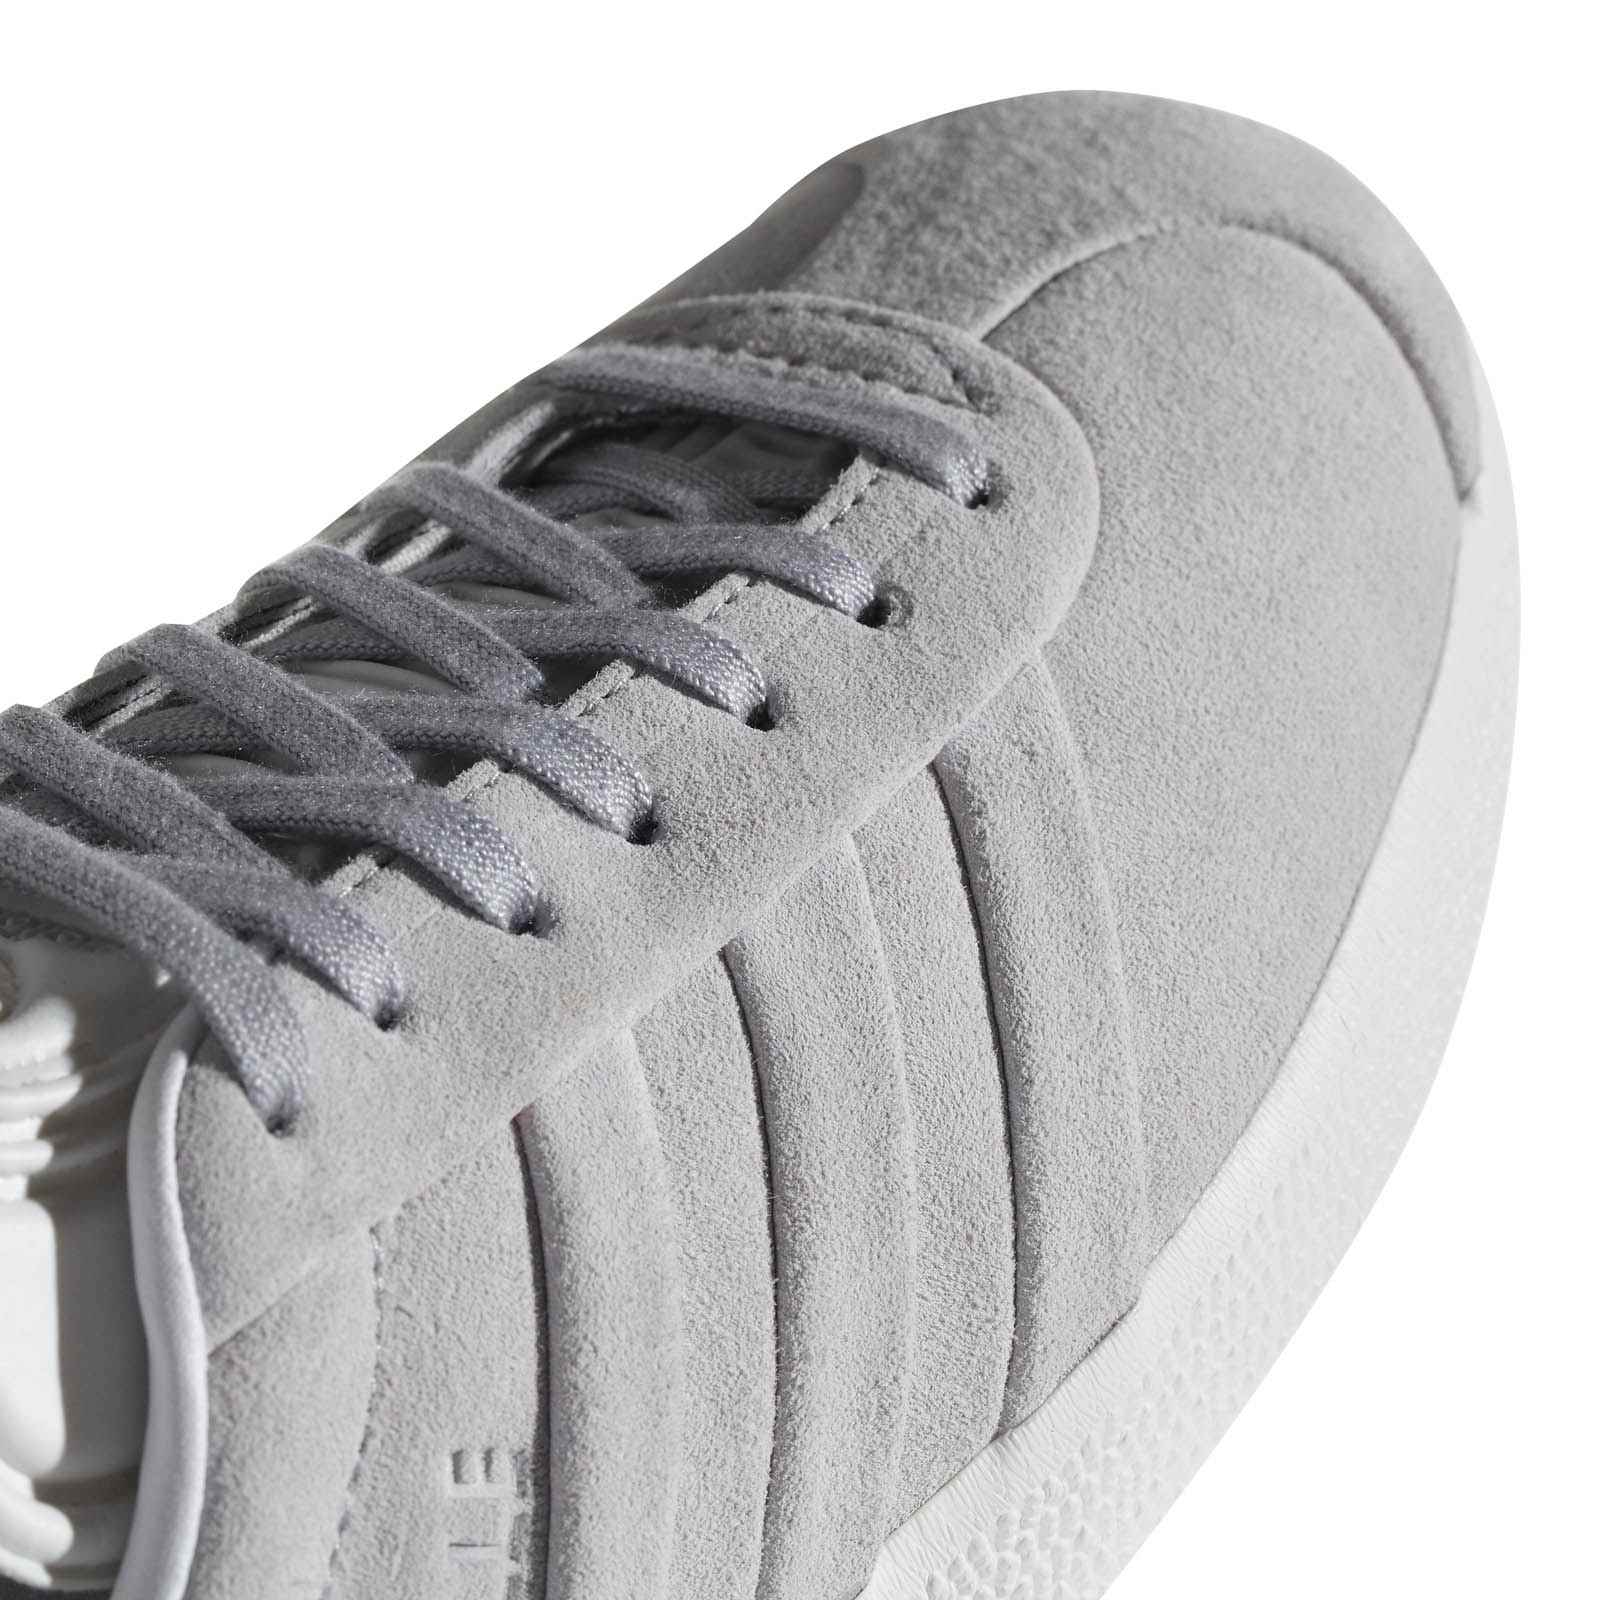 best service bade6 ff421 ADIDAS ORIGINALS Gazelle Stitch And Turn - Sneakers en cuir - gris clair